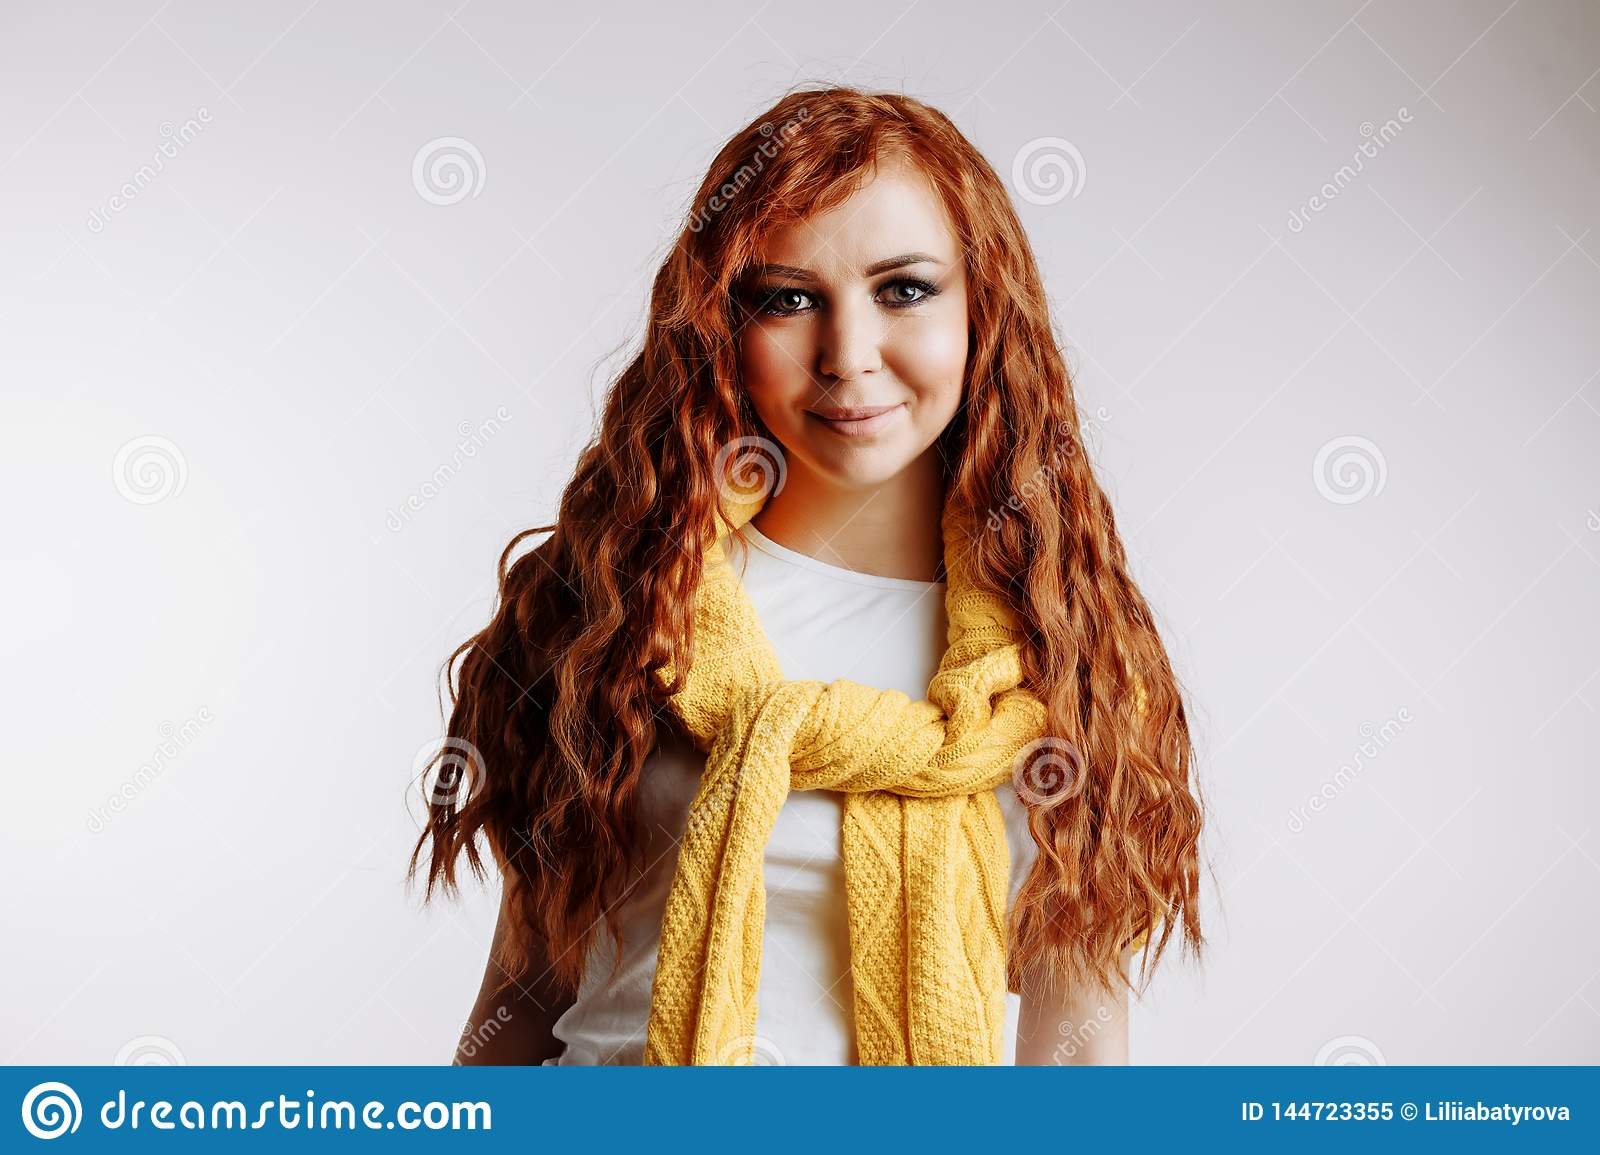 Portrait of beautiful redhead girl with long hair